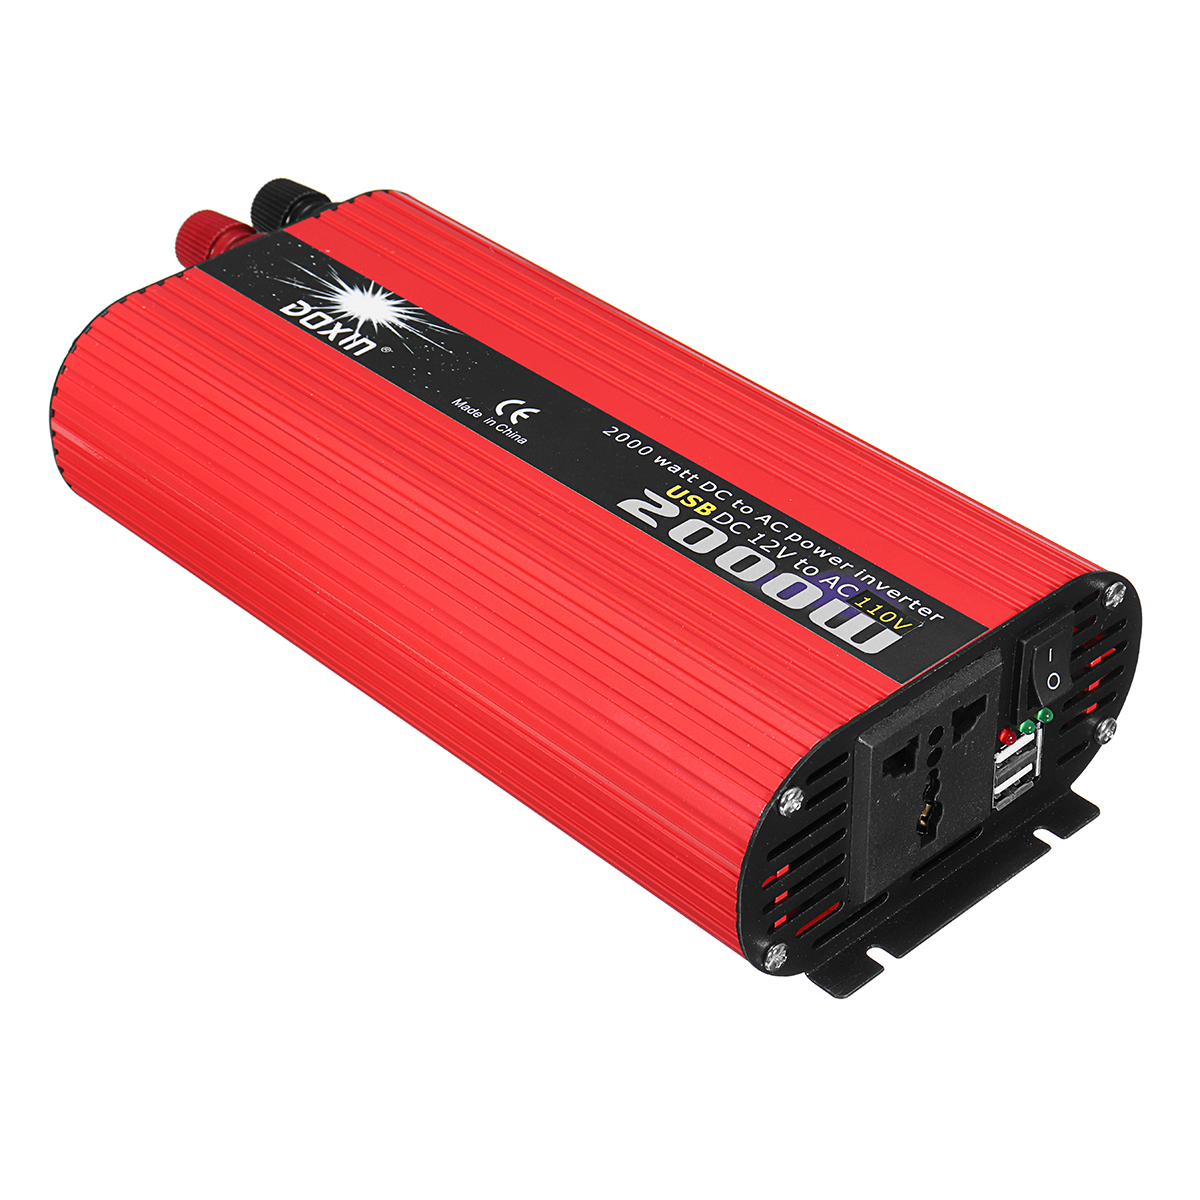 DOXIN 2000W Solar Power Inverter DC 12V/24V to AC 220V/110V Modified Sine Wave Converter